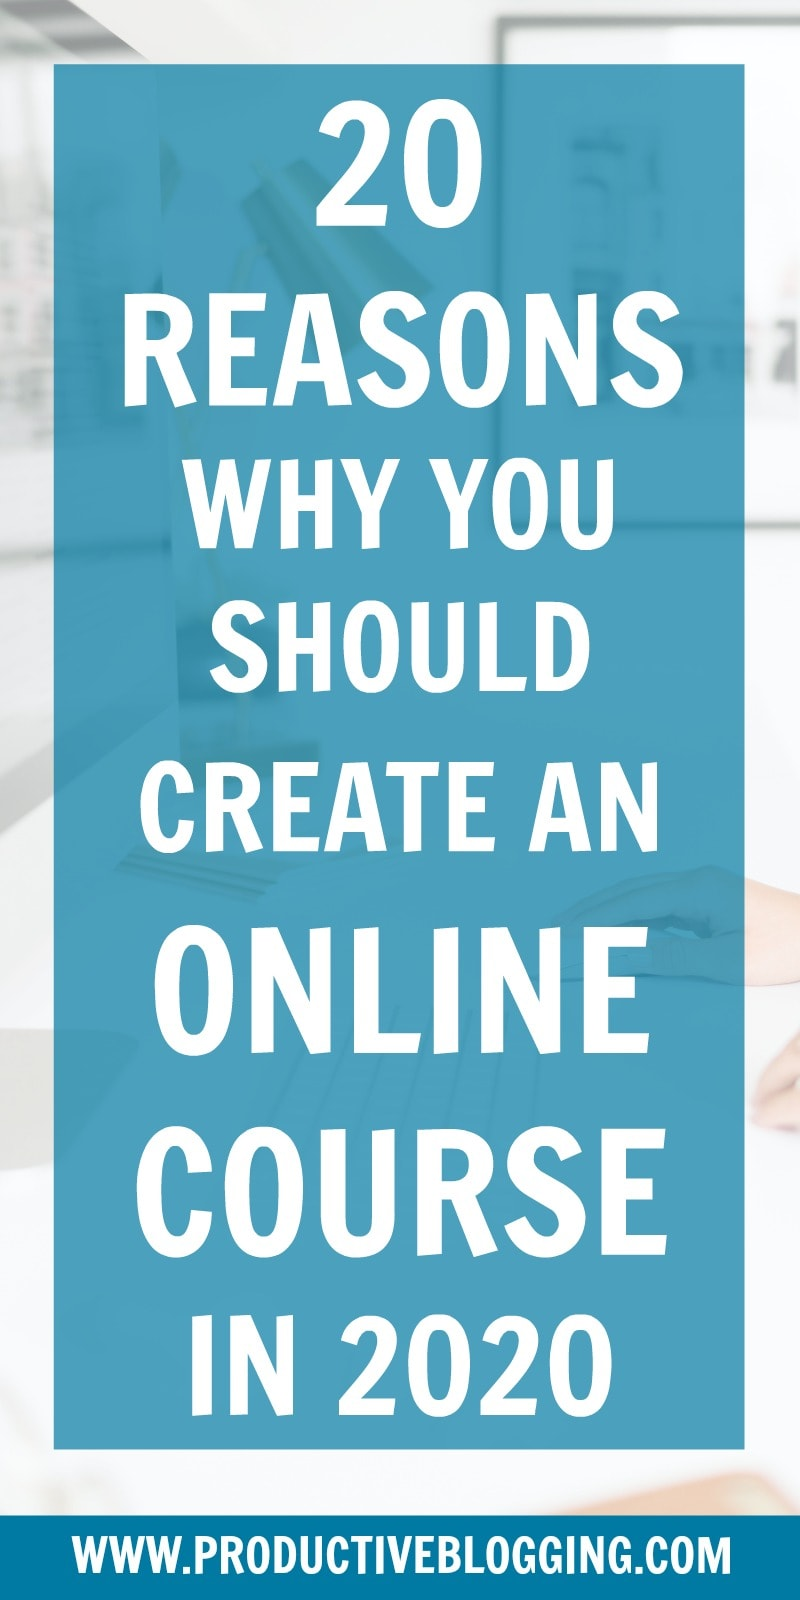 Is 'create an online course' on your to do list for this year? If not, it certainly should be – here are 20 reasons why you should create an online course in 2020. #onlinecourse #digitalcourse #coursecreation #onlinecoursecreation #digitalcoursecreation #digitalproduct #teachable #coursecreator #digitallearning #digitaleducator #bloggingformoney #makemoneyblogging #howdoblogsmakemoney #passiveincome #treatitlikeabusiness #businessblogging #bizblogging #bloggingtips #productiveblogging